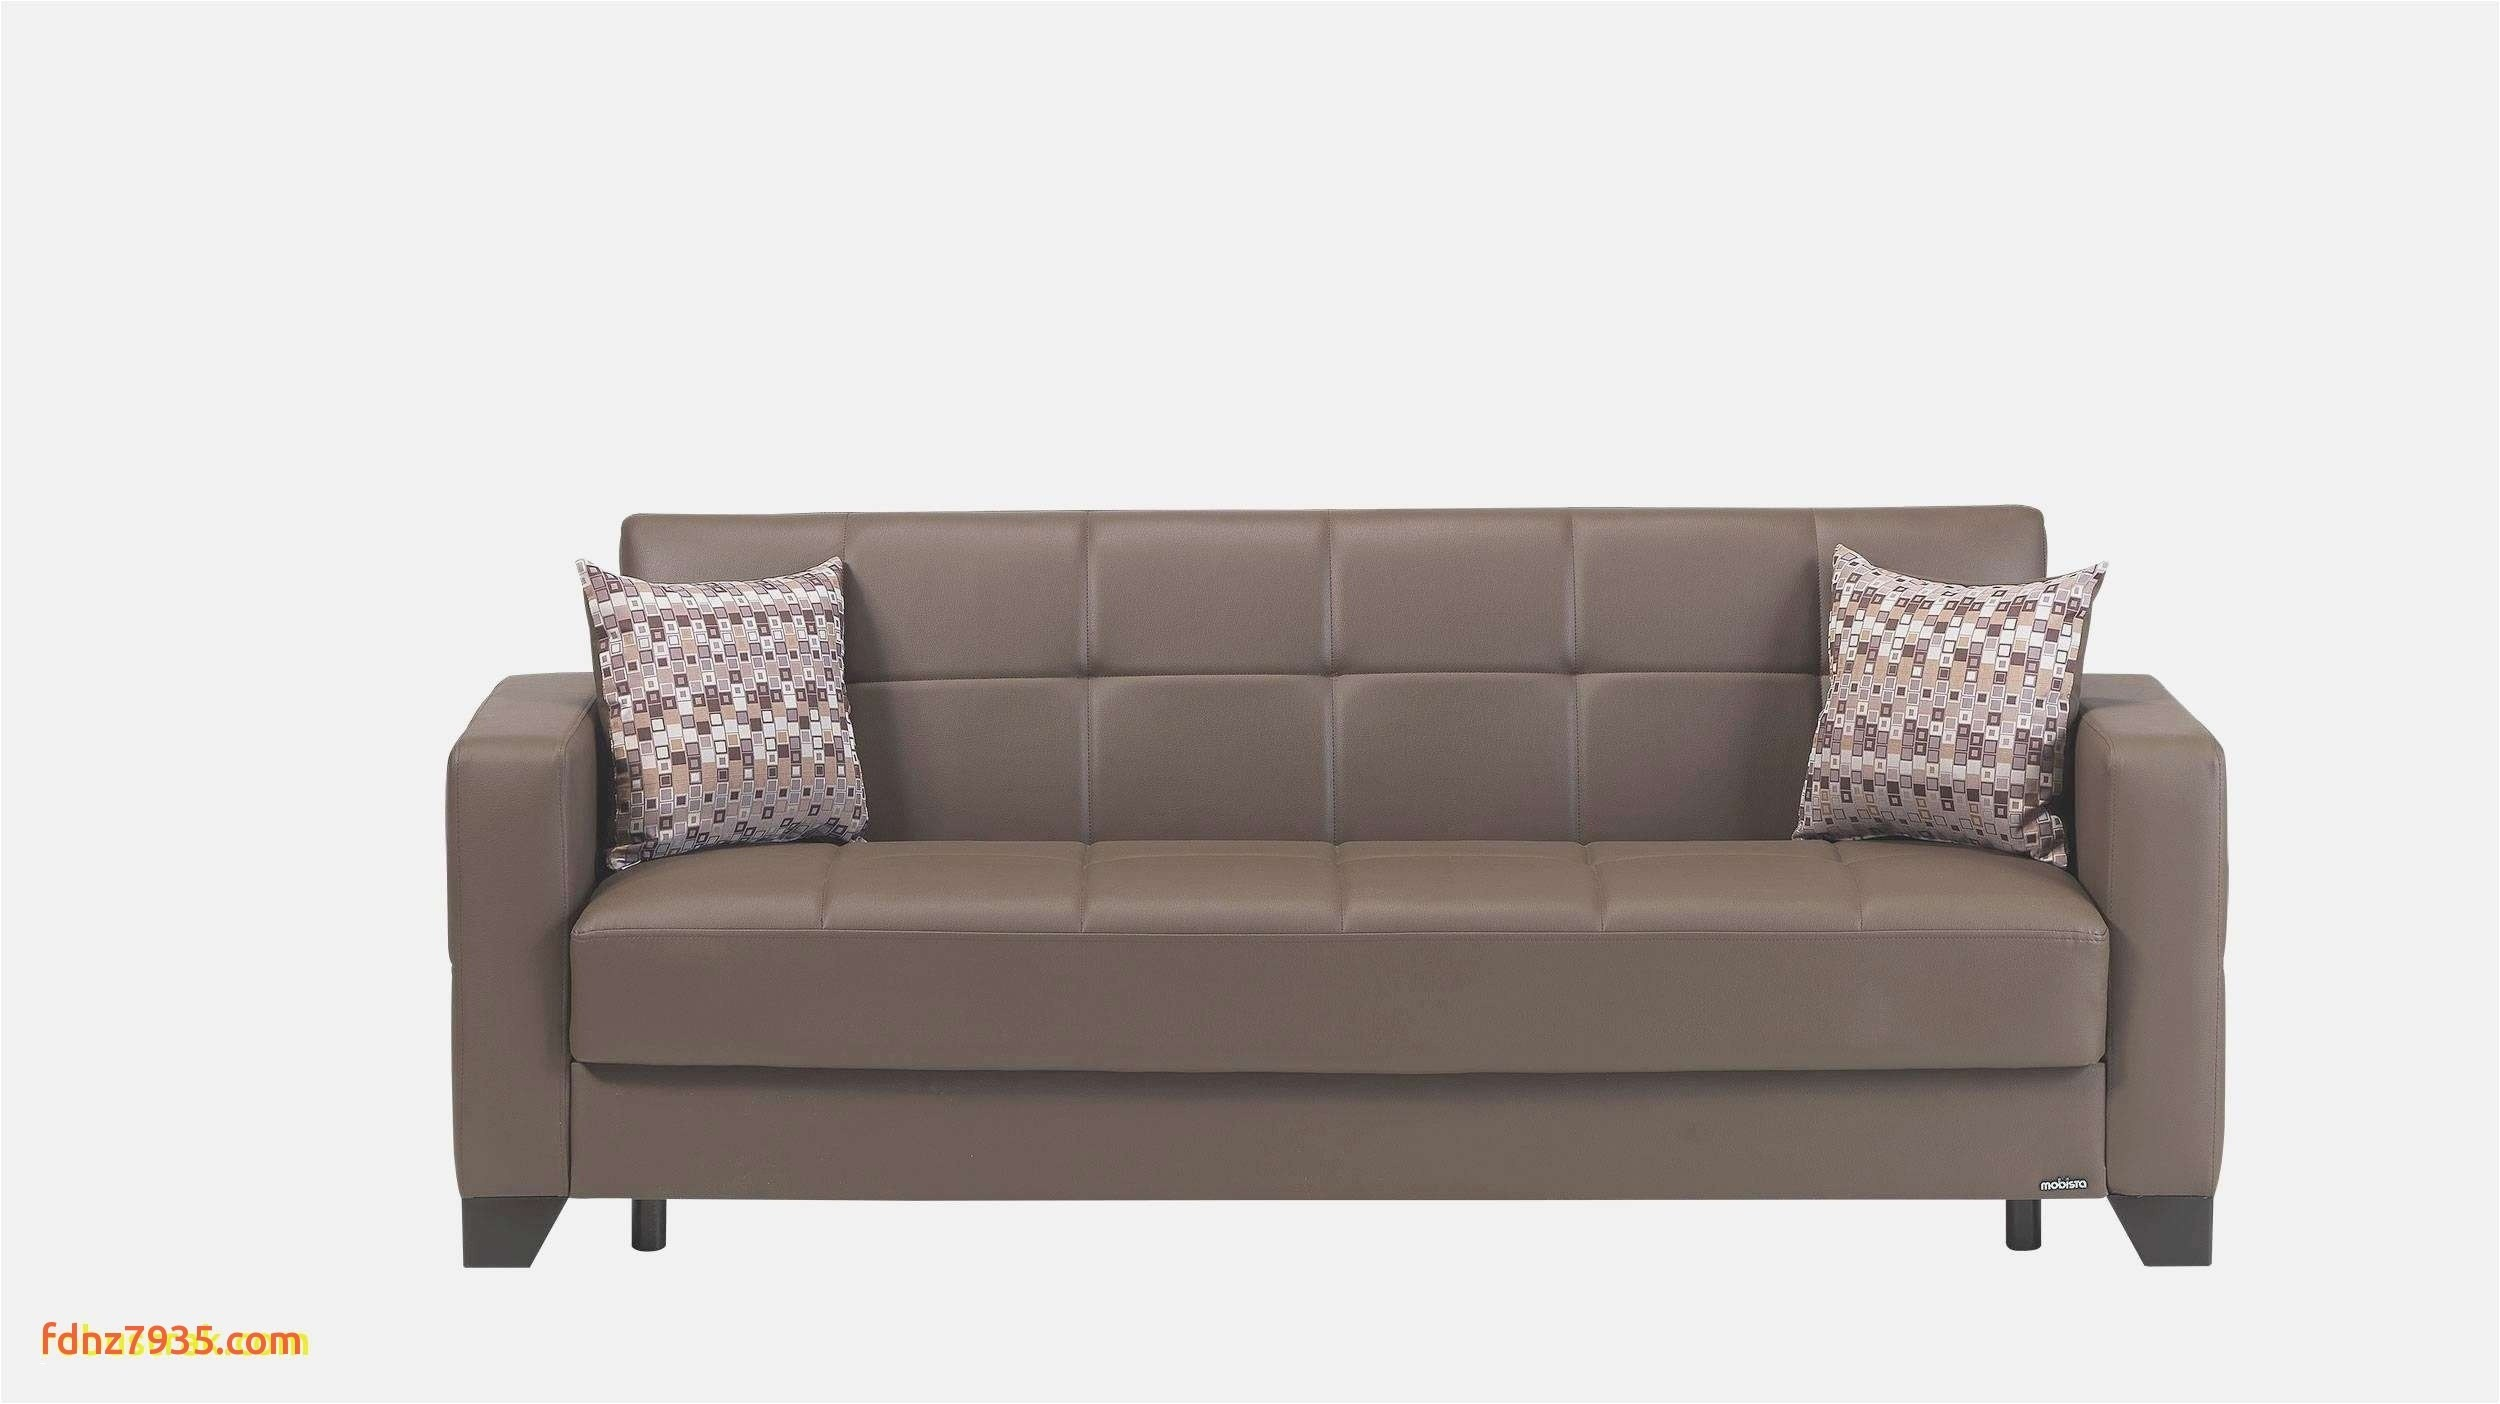 Outdoor Furniture Er Beautiful Ers For Pets Fresh Sectional Couch New 0d Sofa Bed Lazada Indonesia dan sofa ruang tamu